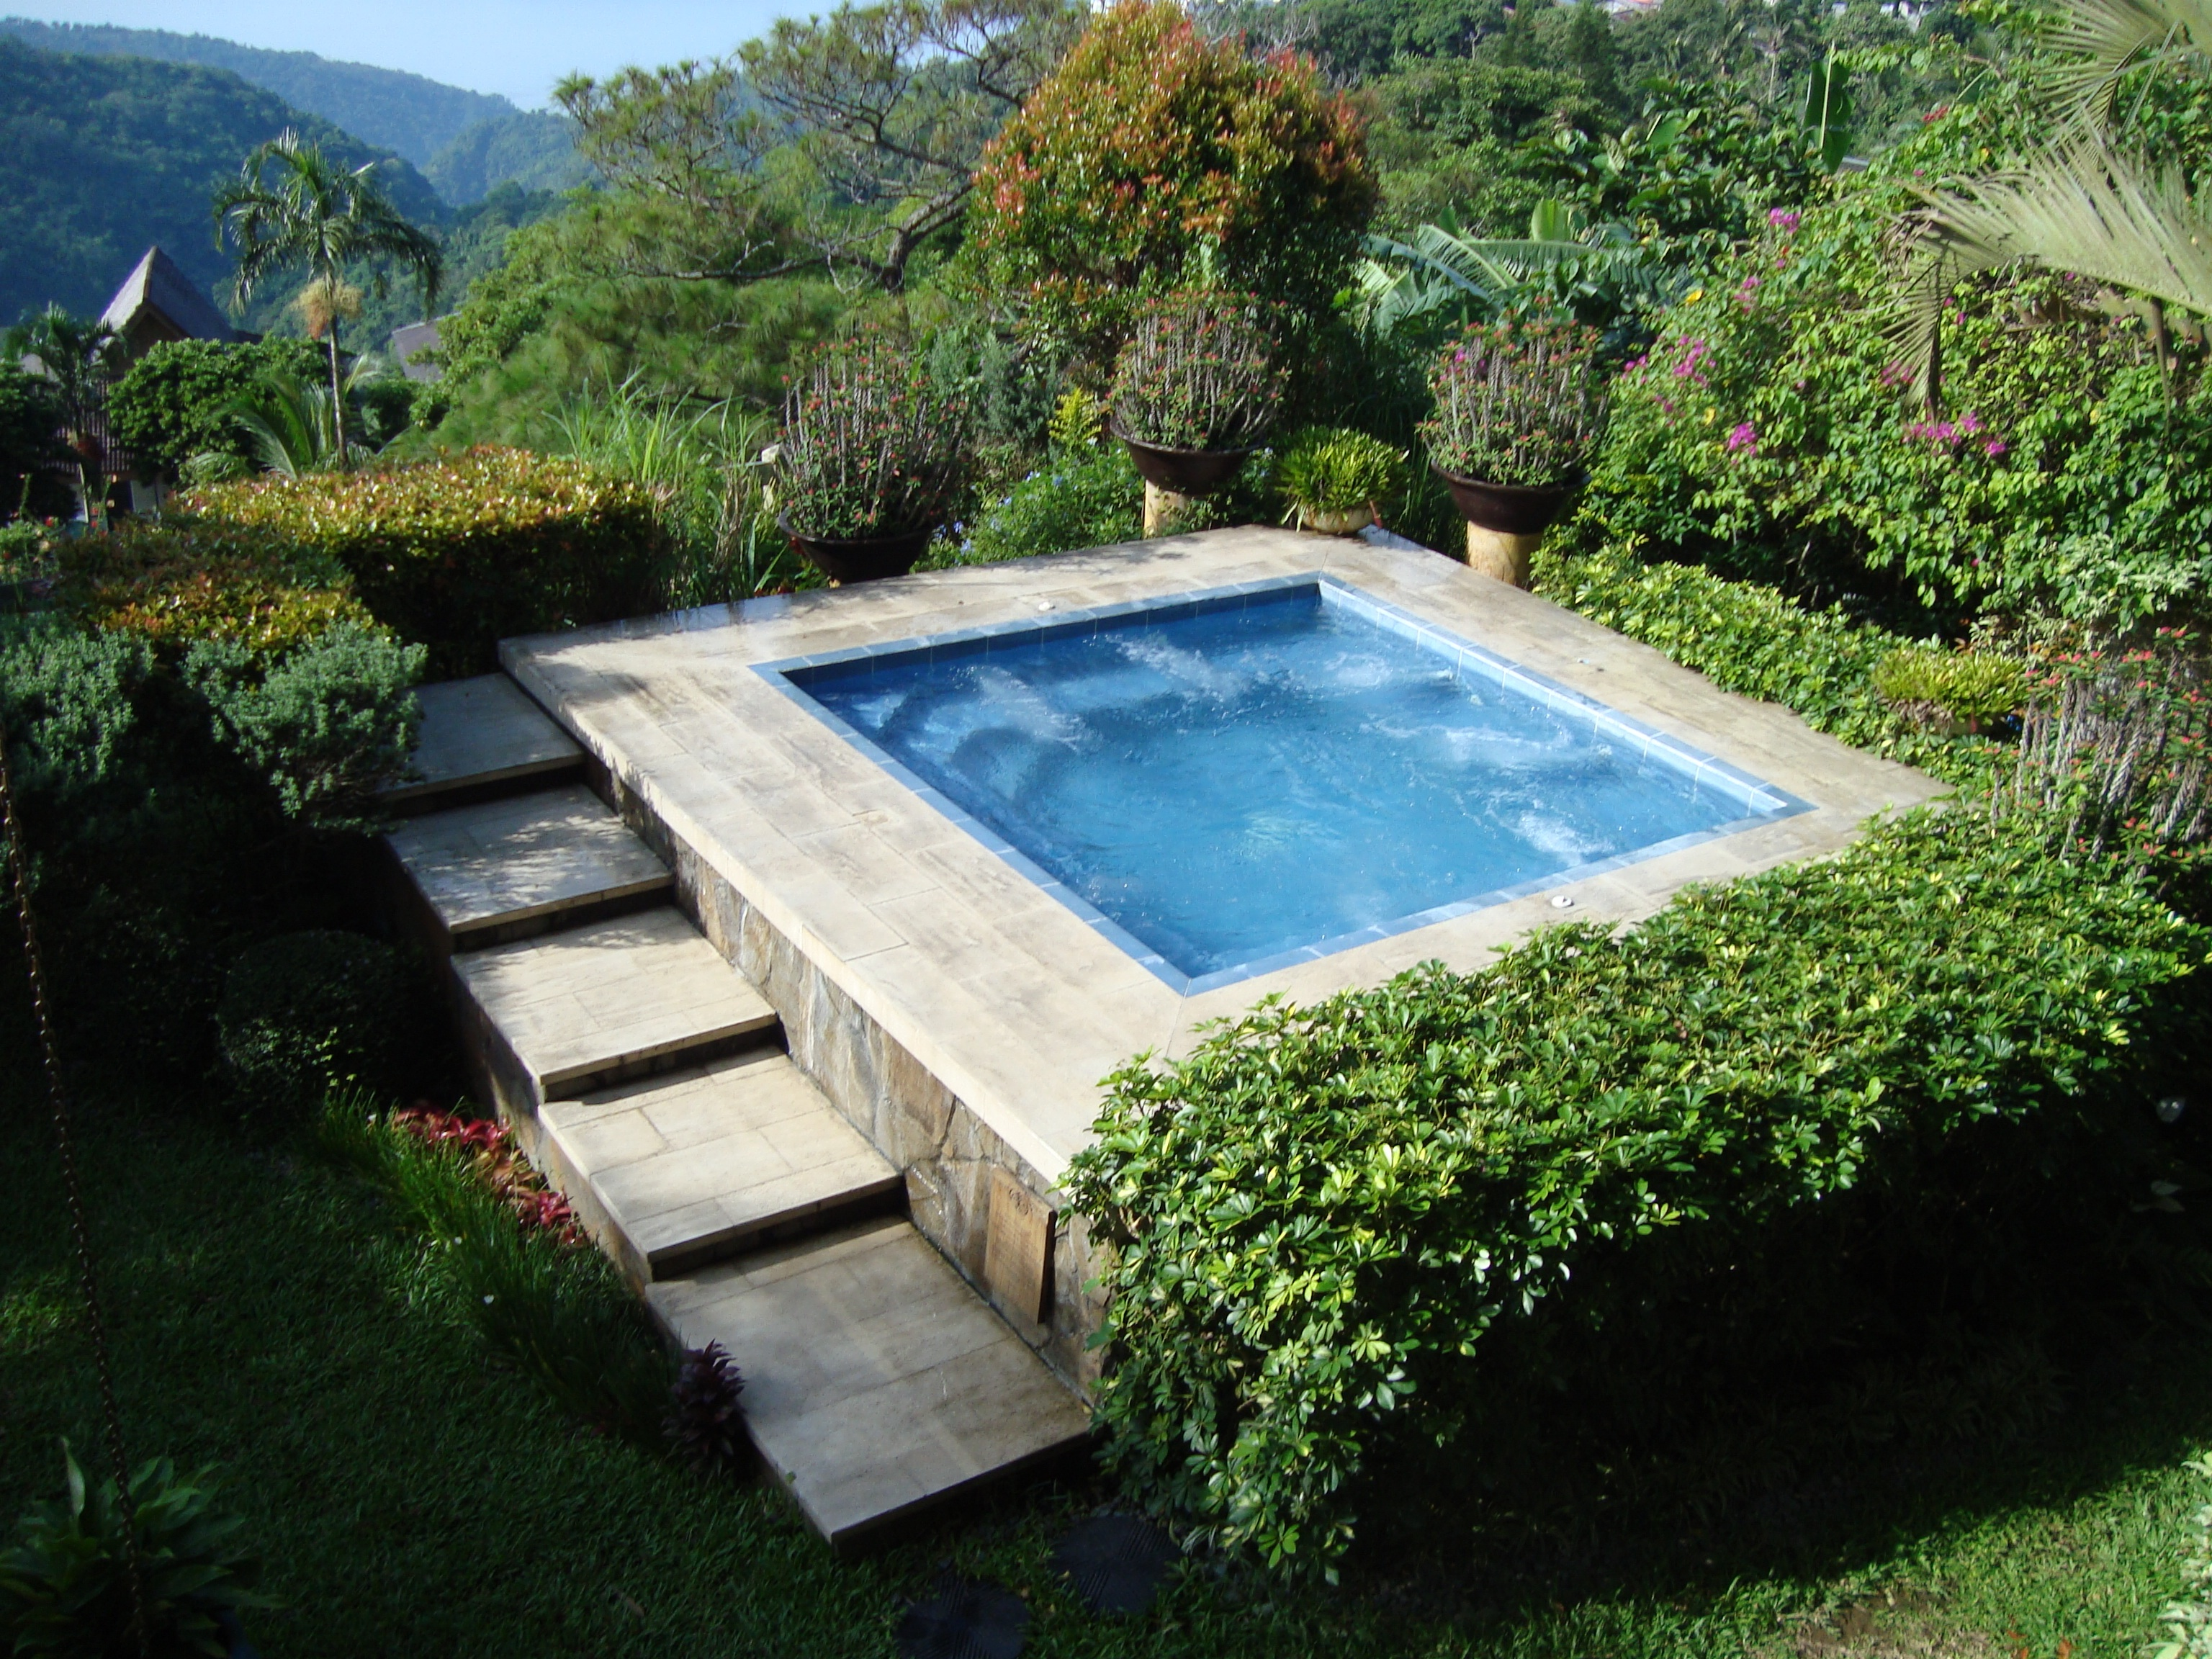 Jacuzzi Pool Bilder 33 Jacuzzi Pools For Your Home